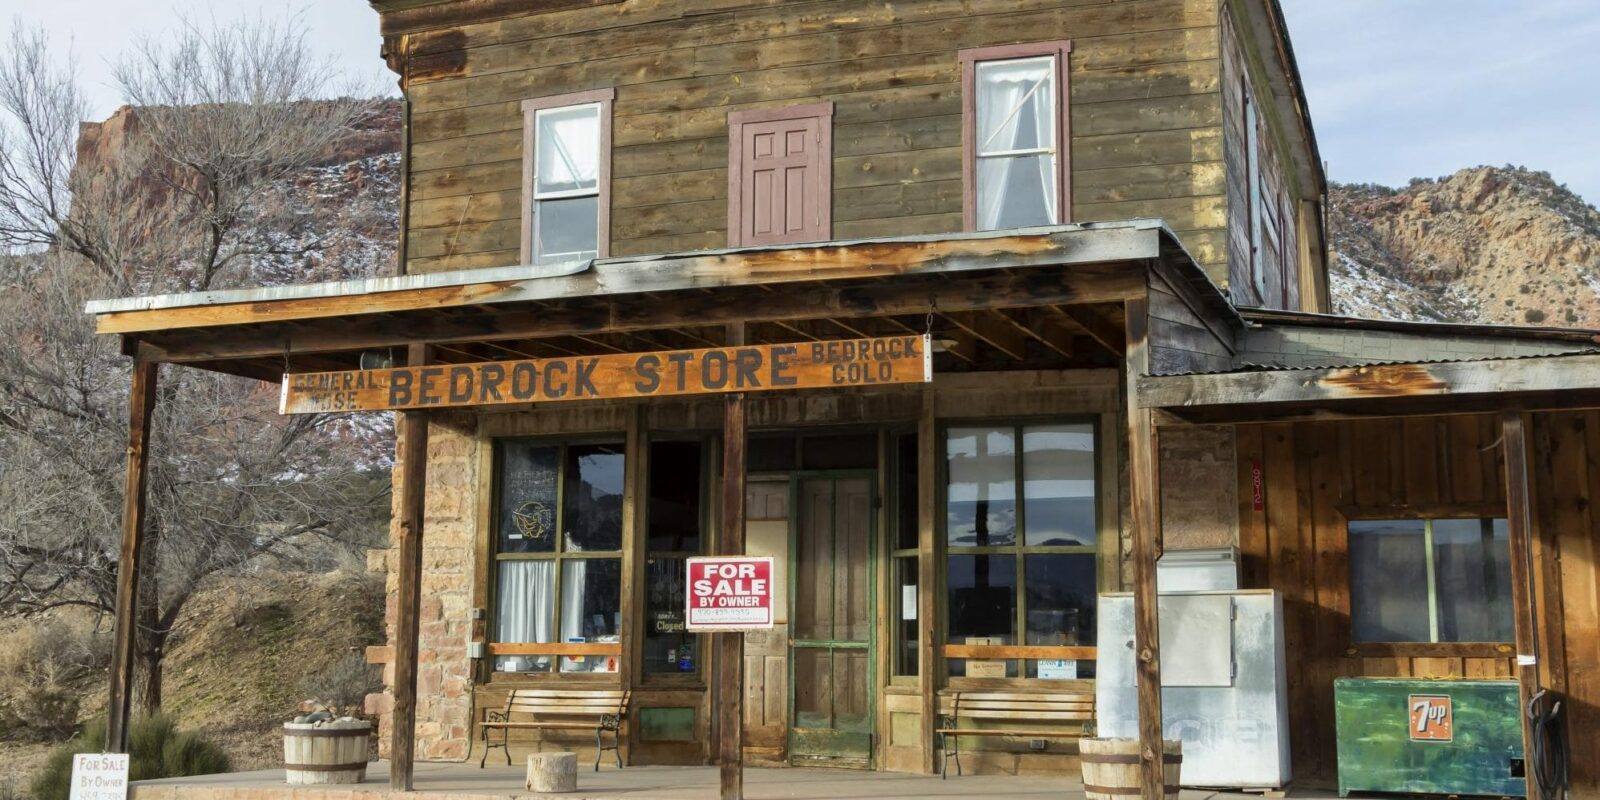 image of General store in Bedrock CO